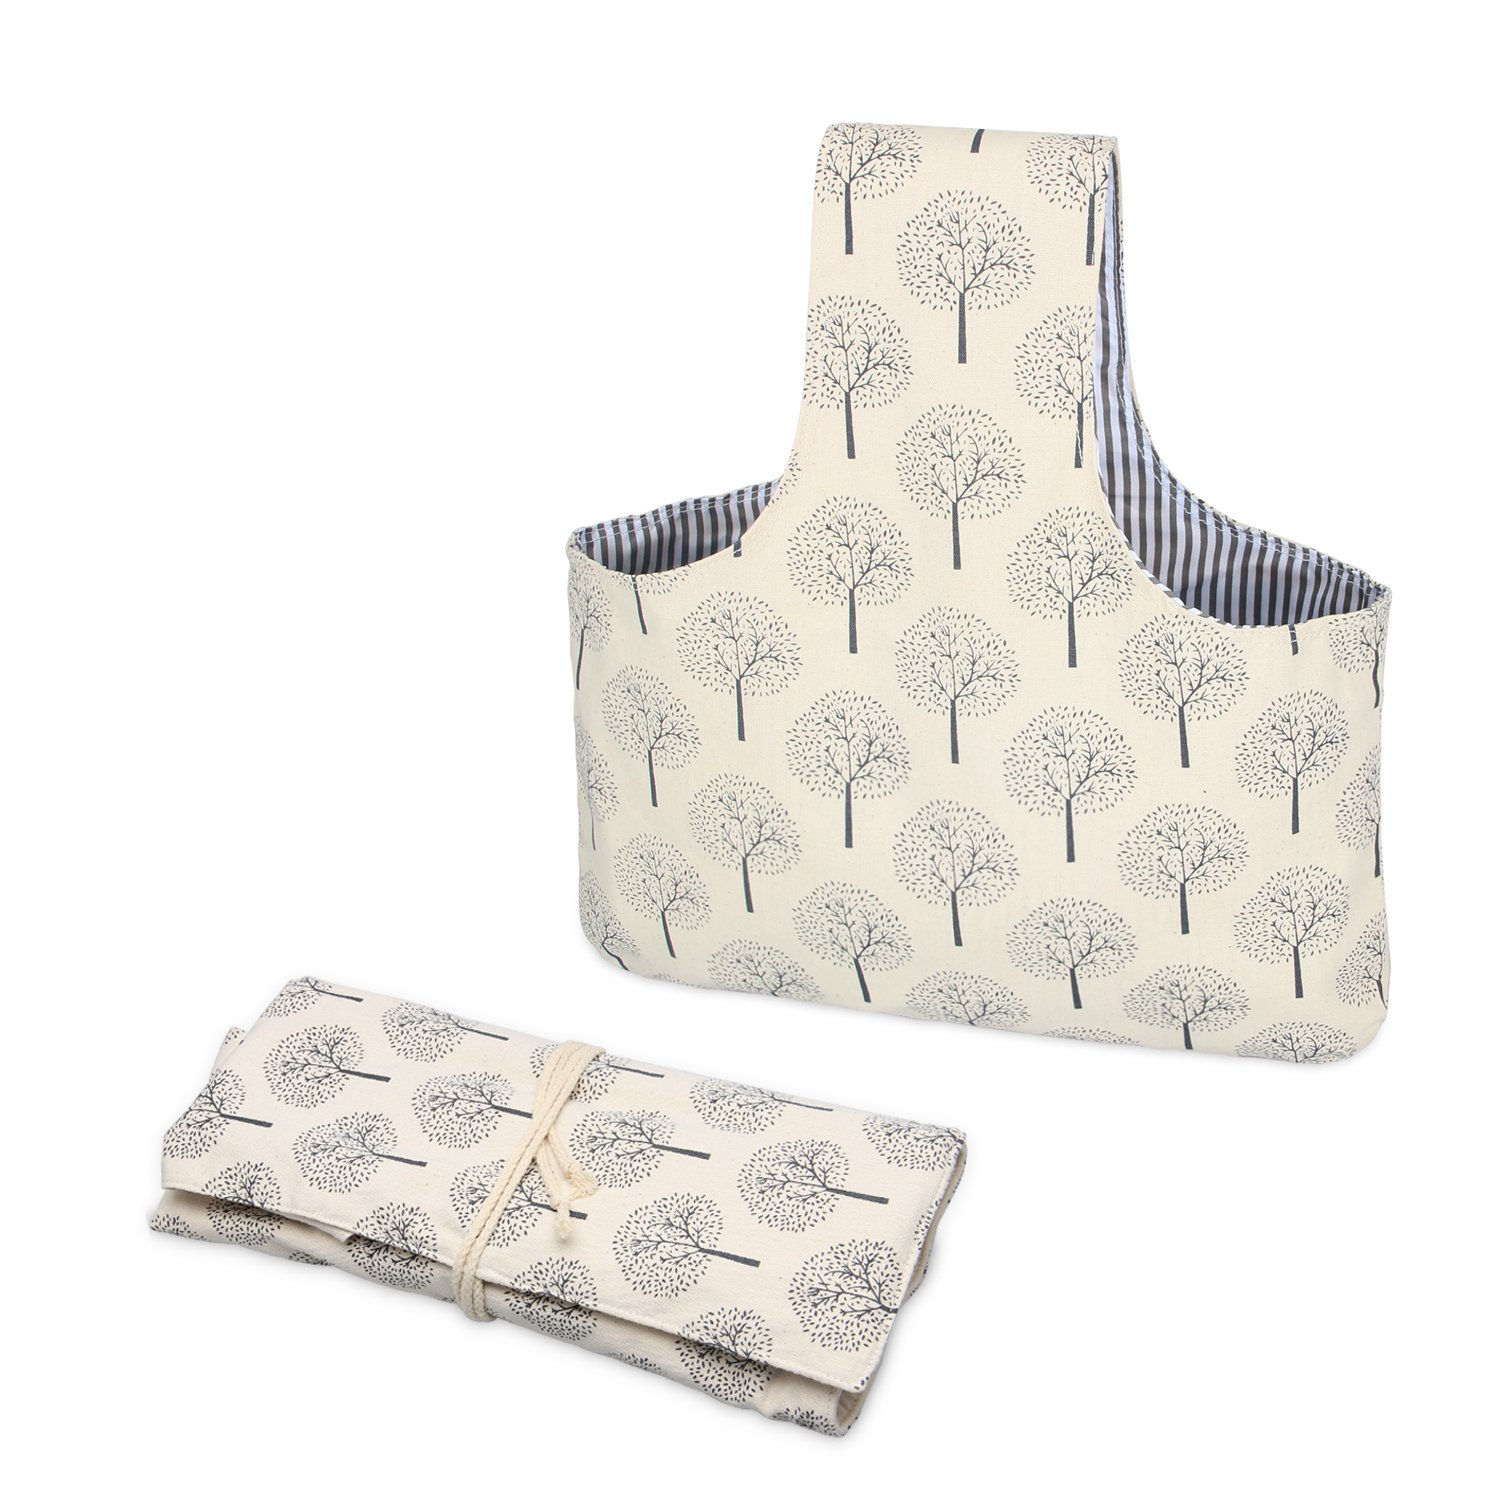 Teamoy 2 Pack Canvas Knitting Tote Bag and Knitting Needles Roll Holder for Yarn, Knitting Needles(14 Inches), Supplies and More, Perfect Size for Knitting on The Go(Large, Tree)